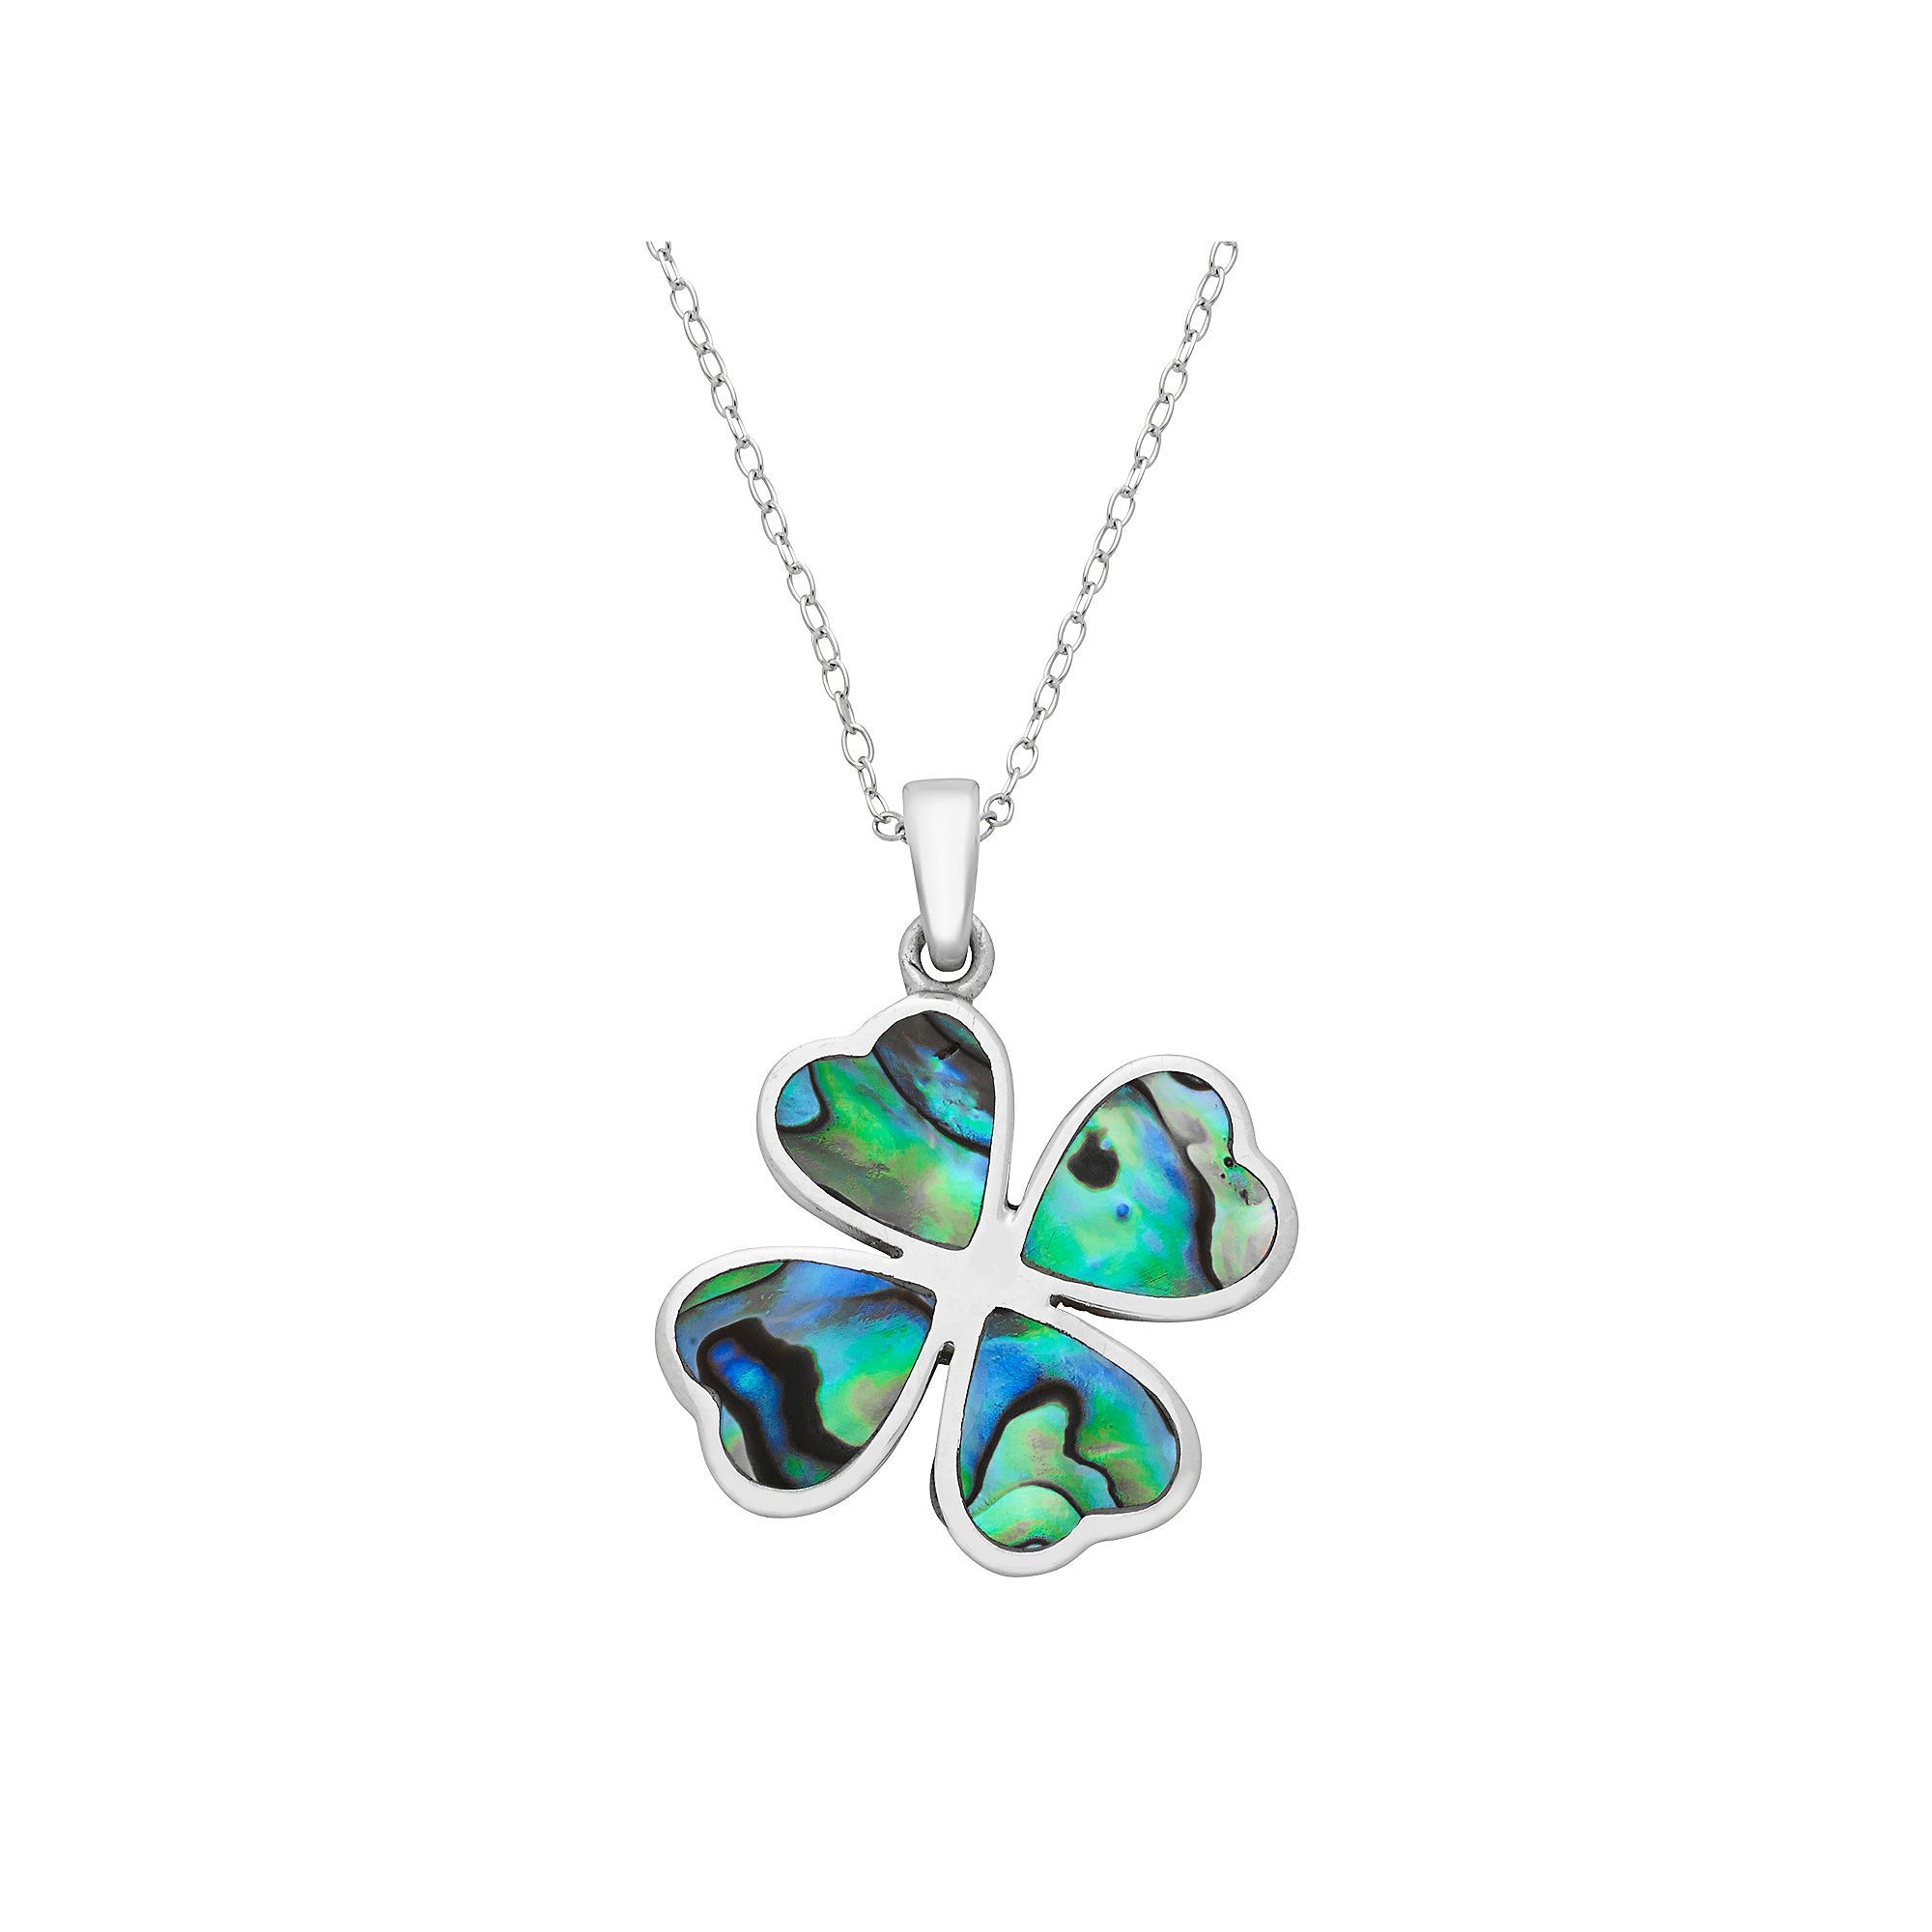 products leaf jewelry lucky necklace color image collections diamond pendant nicolehd four clover